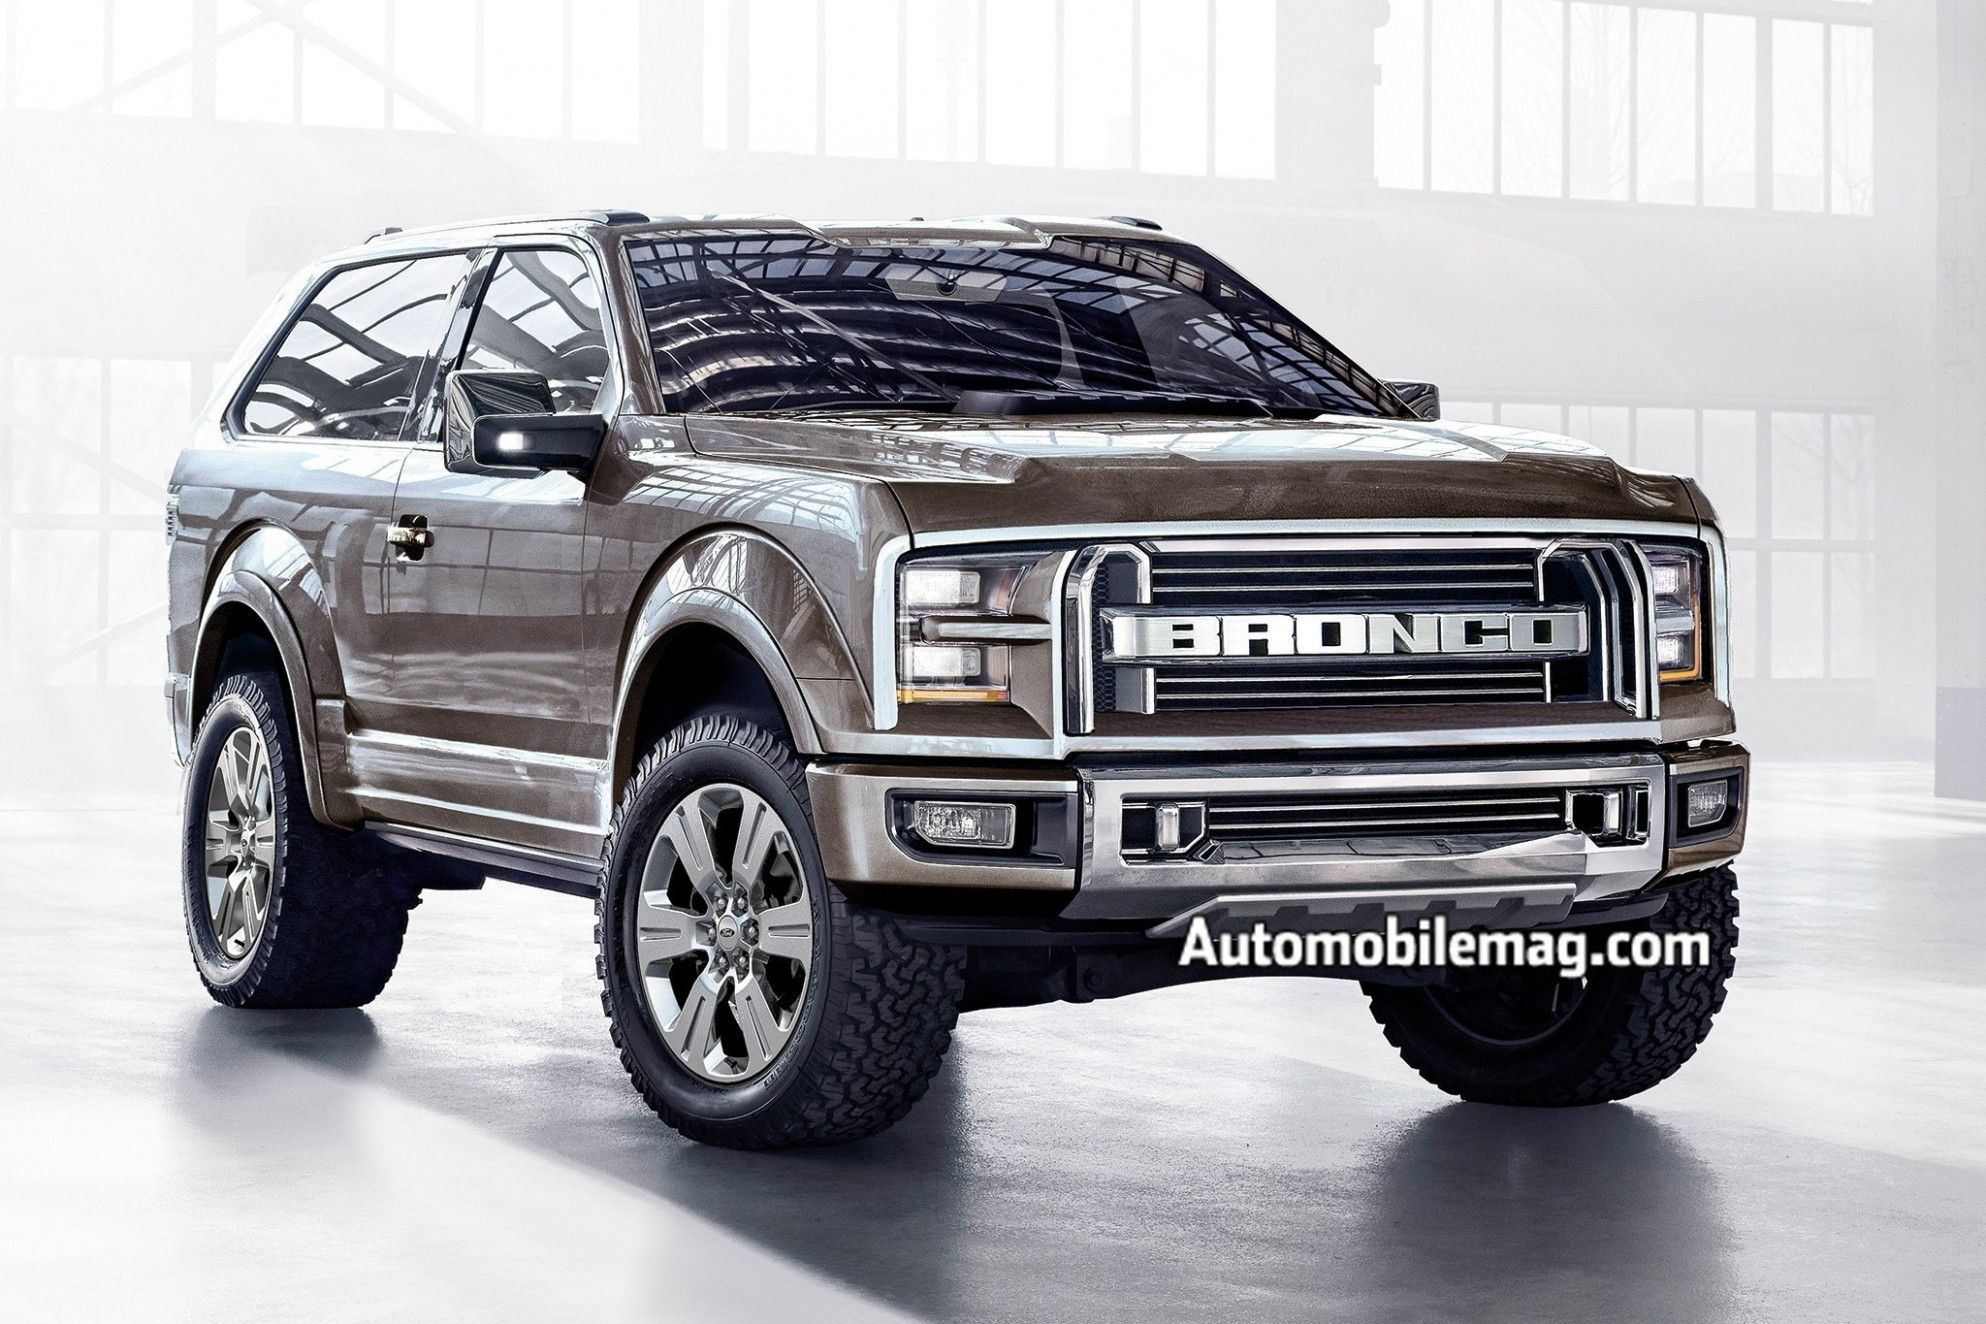 2020 Ford F100 Picture in 2020 Ford bronco, Ford ranger